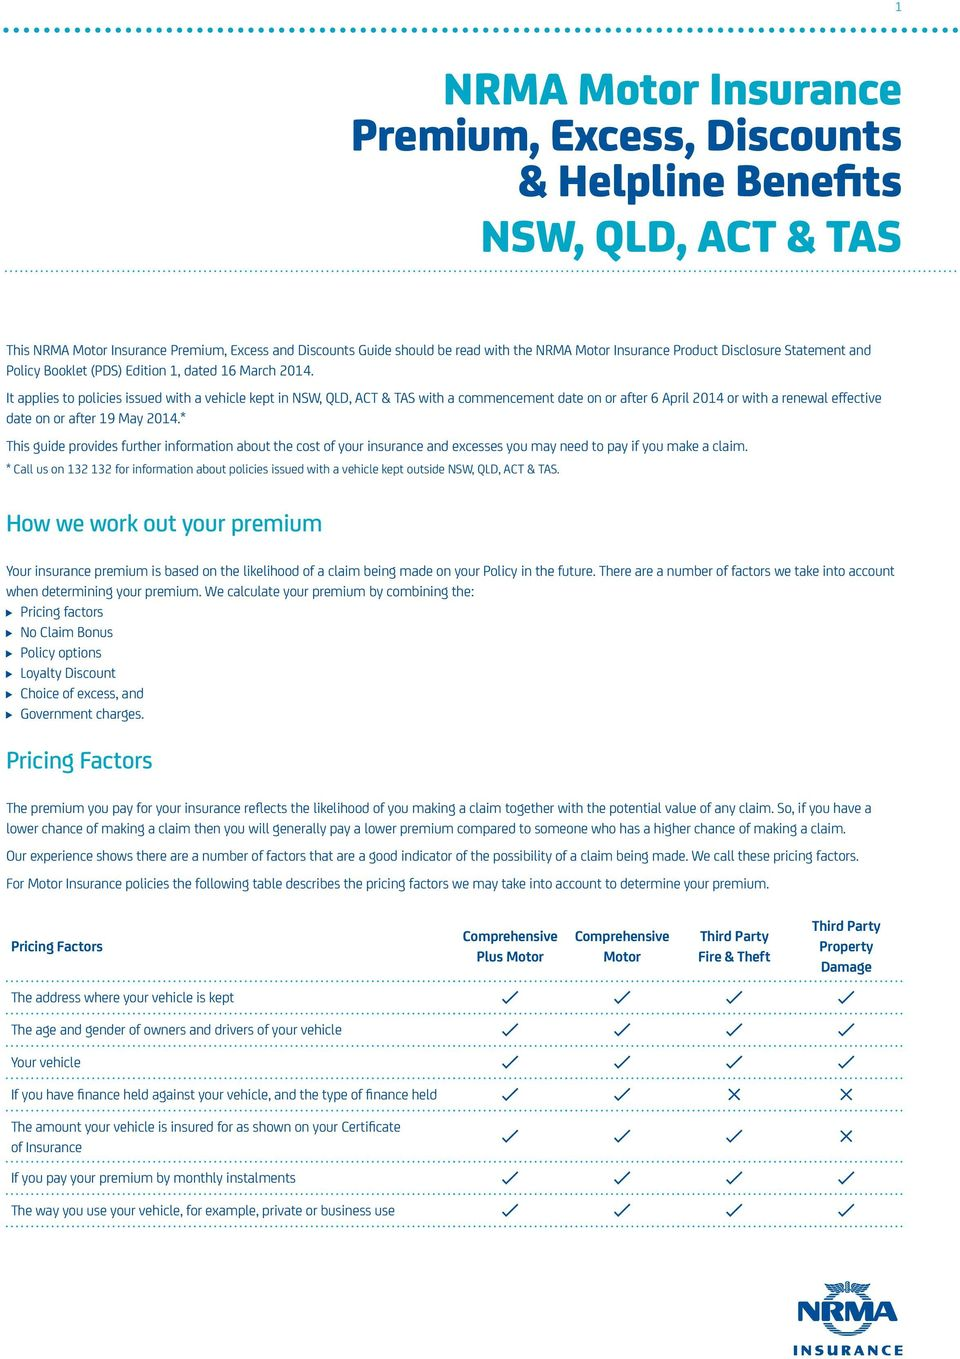 It applies to policies issued with a vehicle kept in NSW, QLD, ACT & TAS with a commencement date on or after 6 April 2014 or with a renewal effective date on or after 19 May 2014.